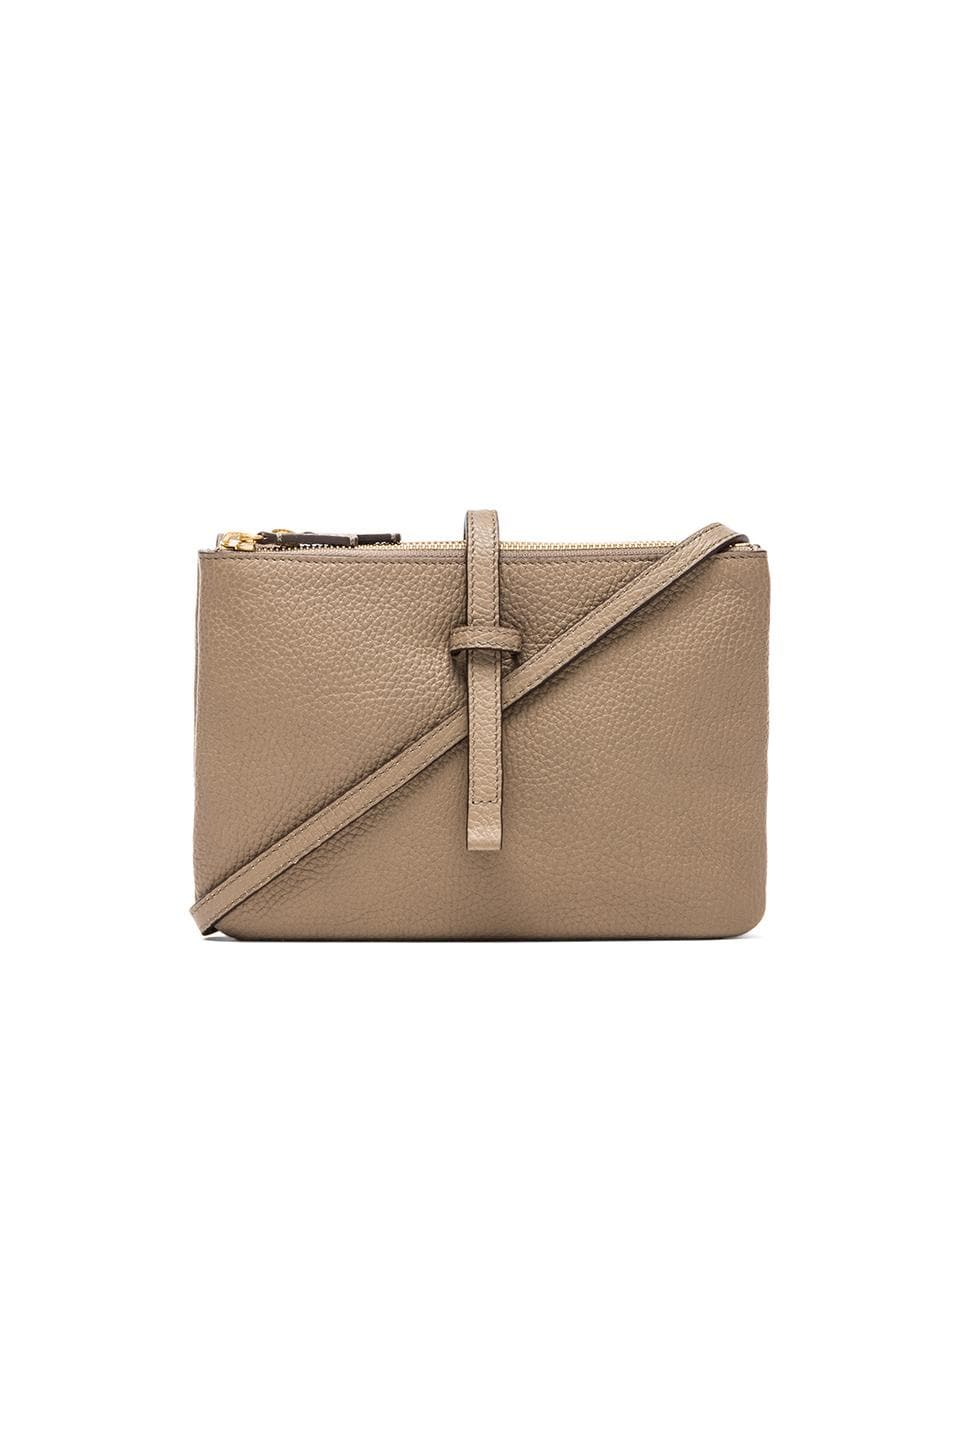 Annabel Ingall Jojo Crossbody in String